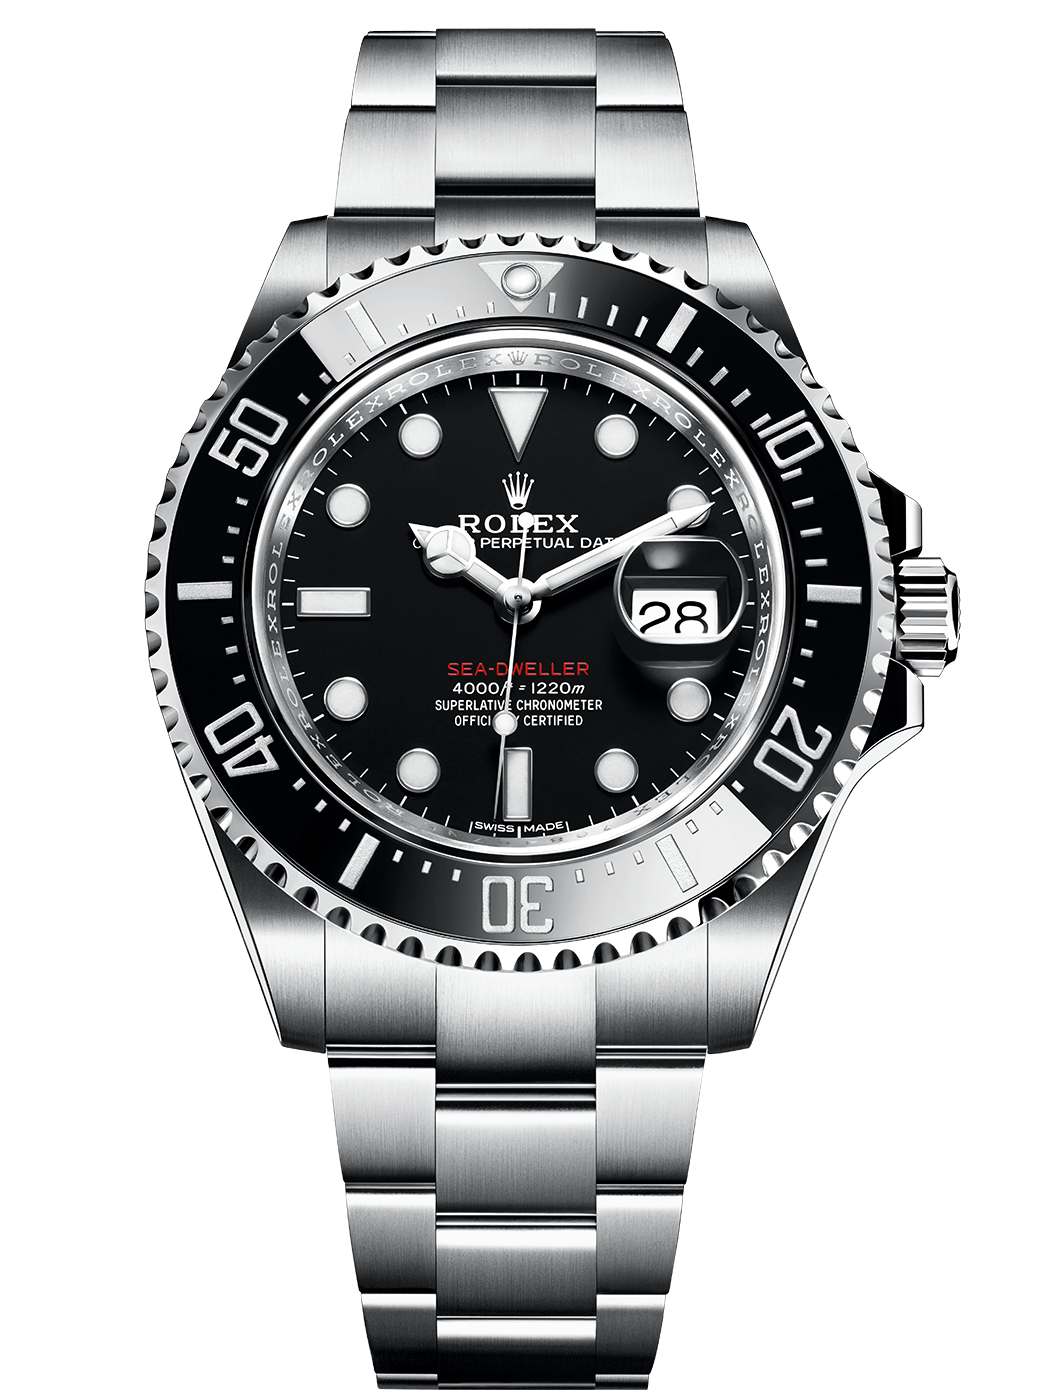 baselworld-2017-rolex-sea-dweller-red-lauren-blog.jpg